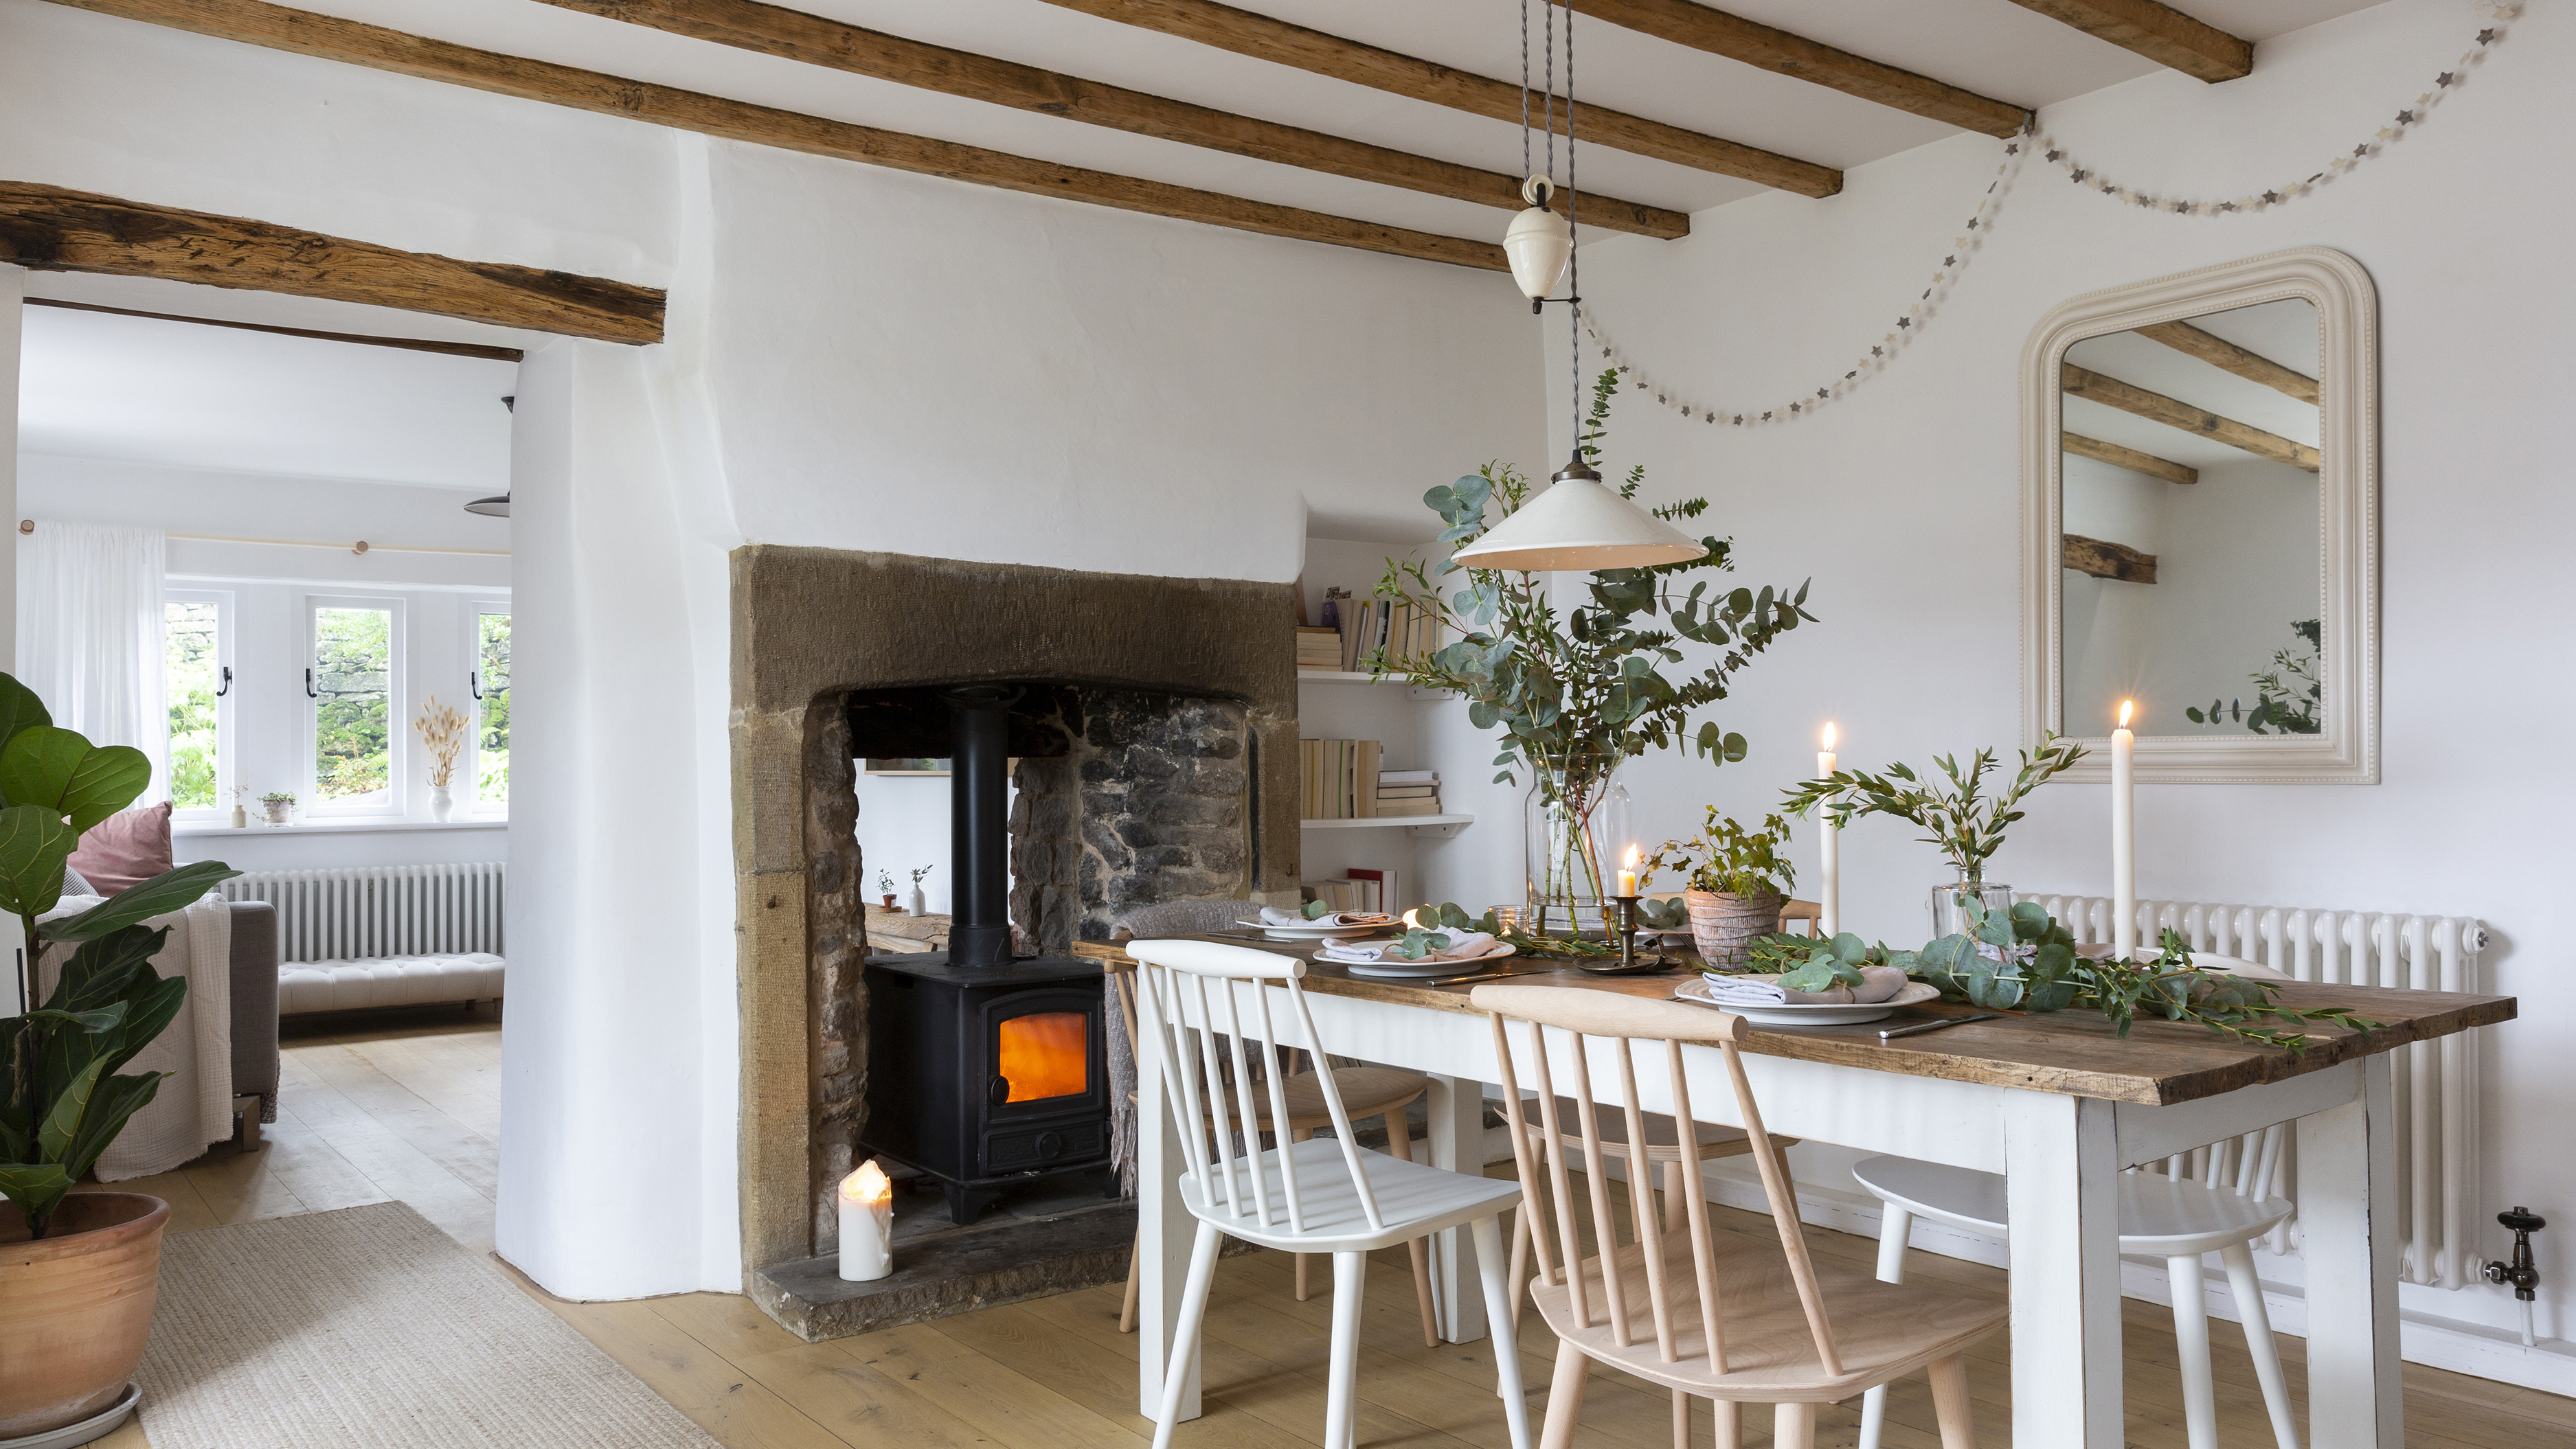 Real Home A Victorian Country Cottage With Simple Scandi Style Interiors Real Homes